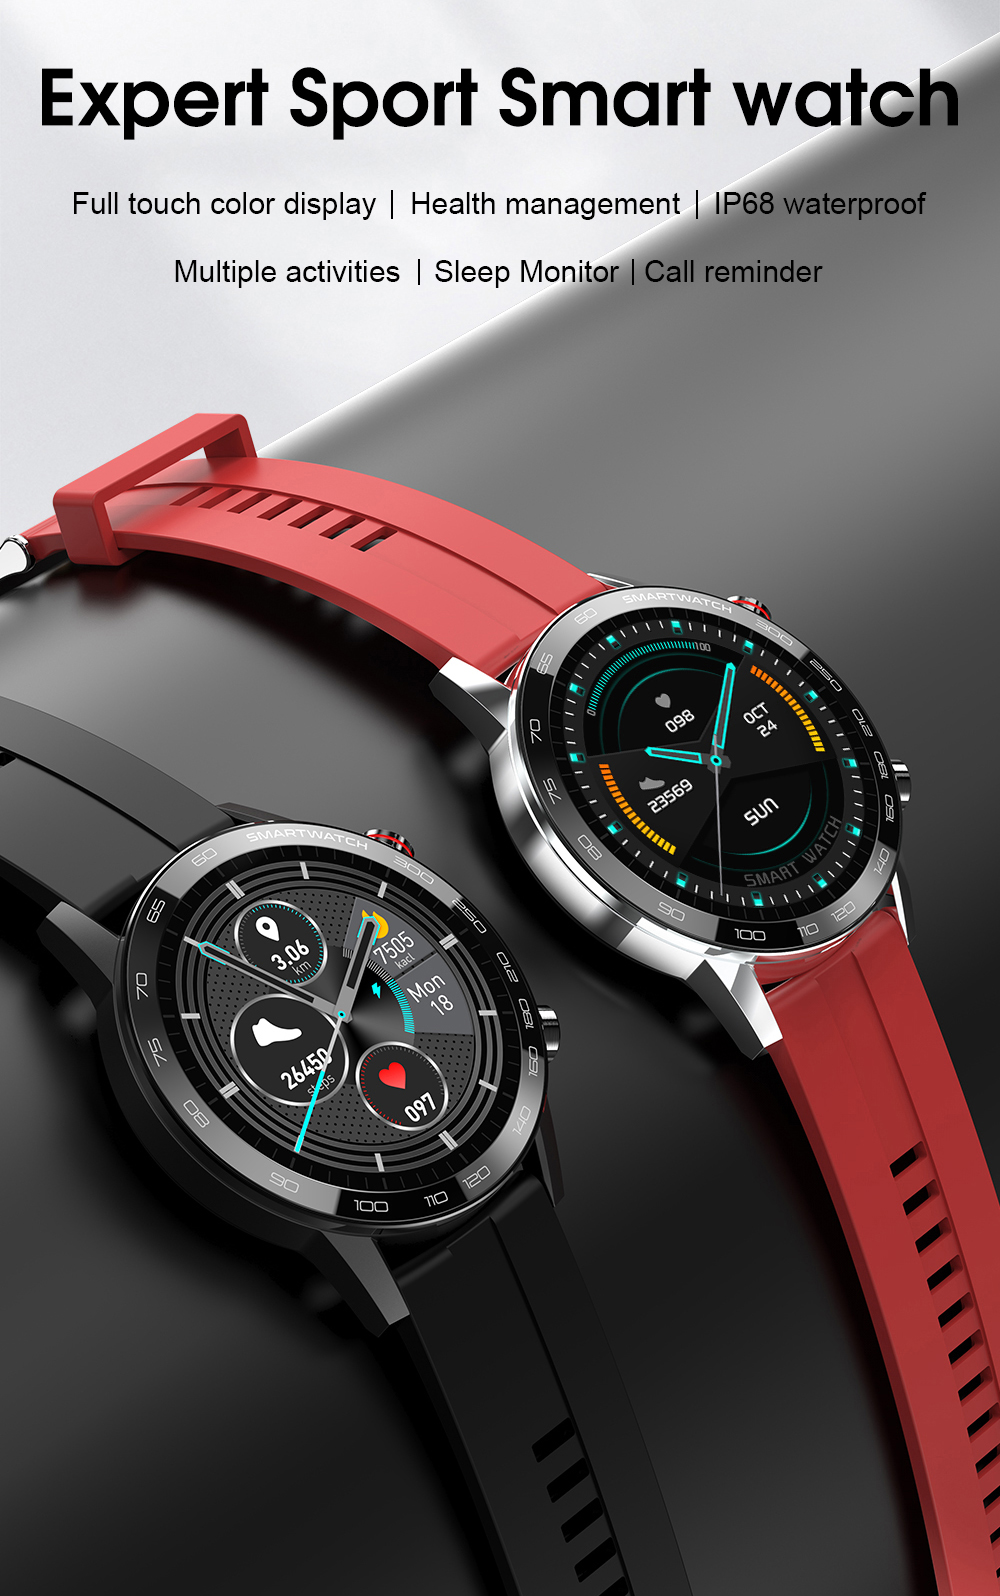 Haad2a09d732c4d85a7ca75130aafaf61f Reloj Inteligente Hombre Smartwatch Ecg Ppg IP68 Smarthwatch Men Full Touch Smart Watch 2020 For Huawei Xiaomi Android Apple IOS